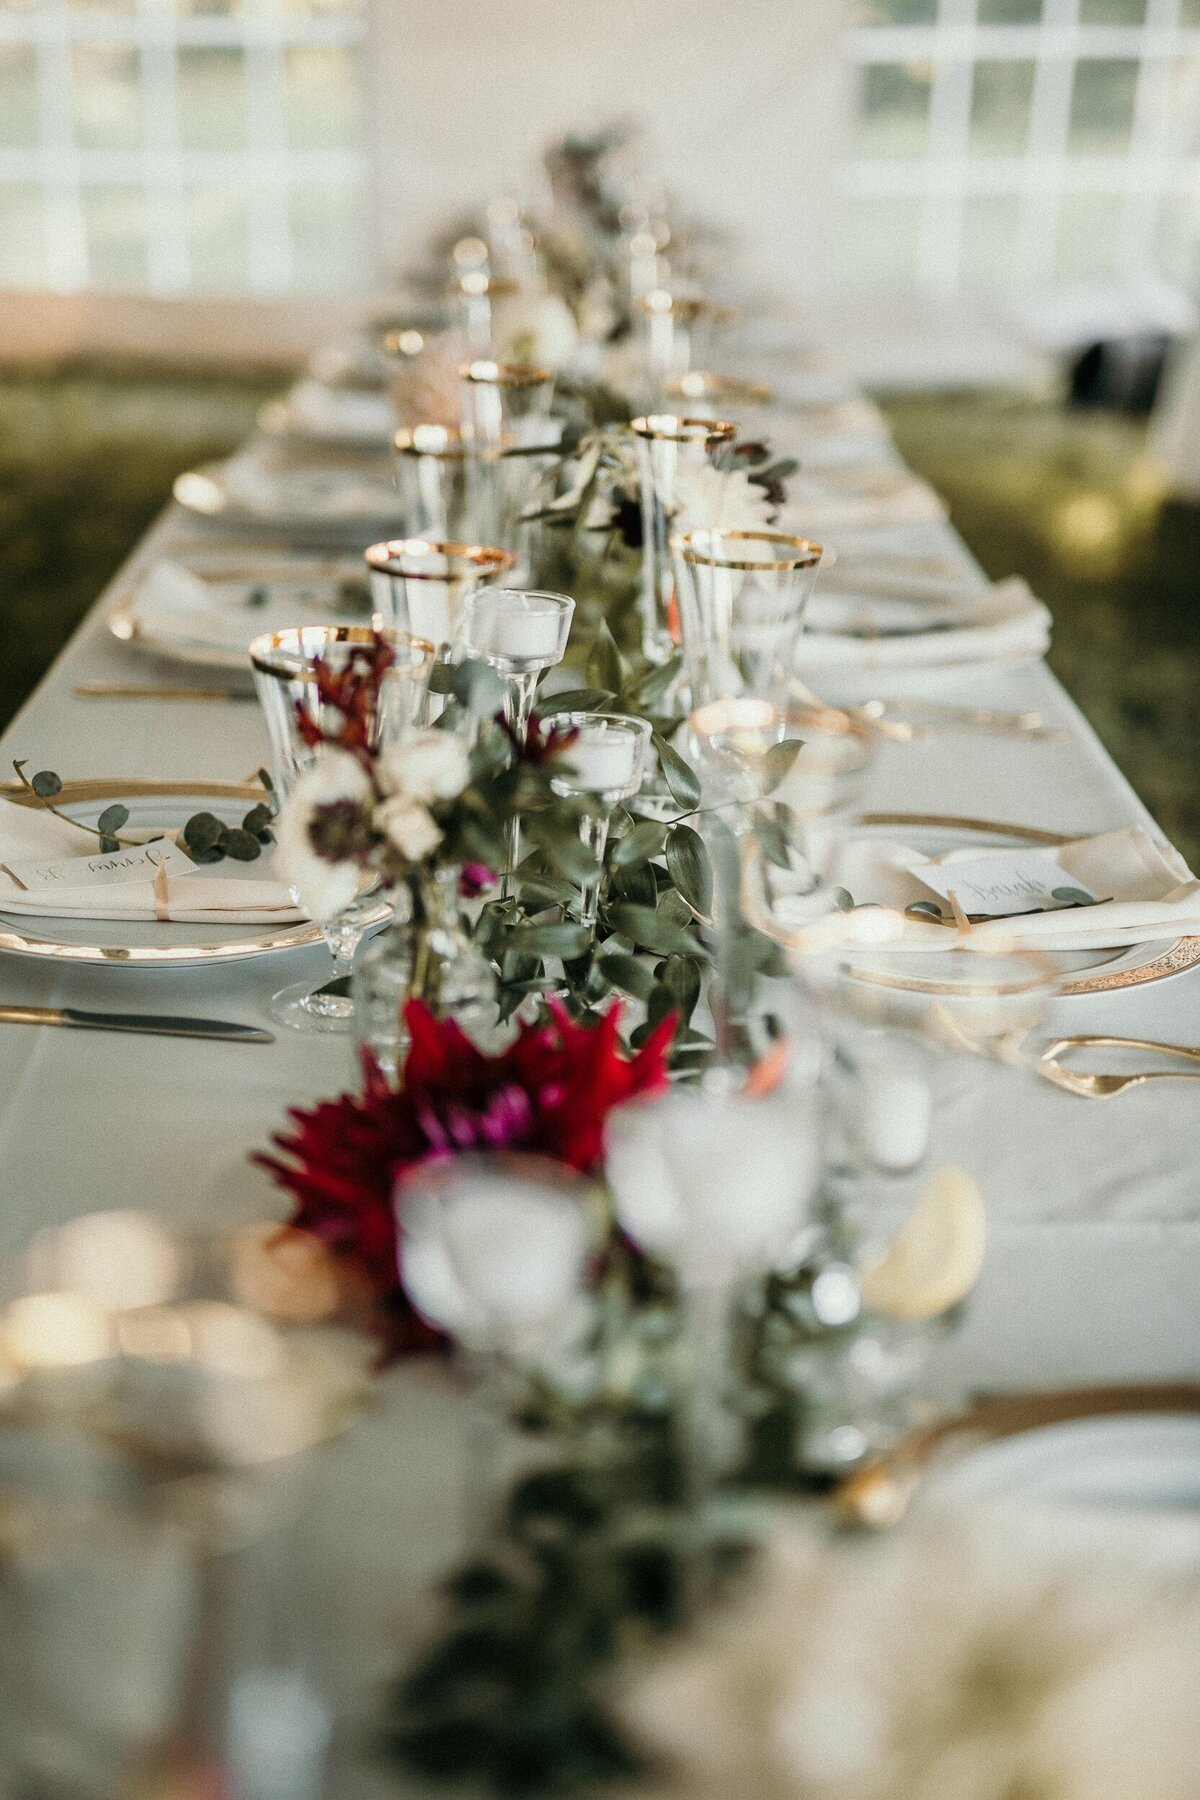 Soirées and Revelry Wedding Event Planning Coordination Design Designer Planner Coordinator New England East Coast Destination Luxury High End Jennifer Tansley13